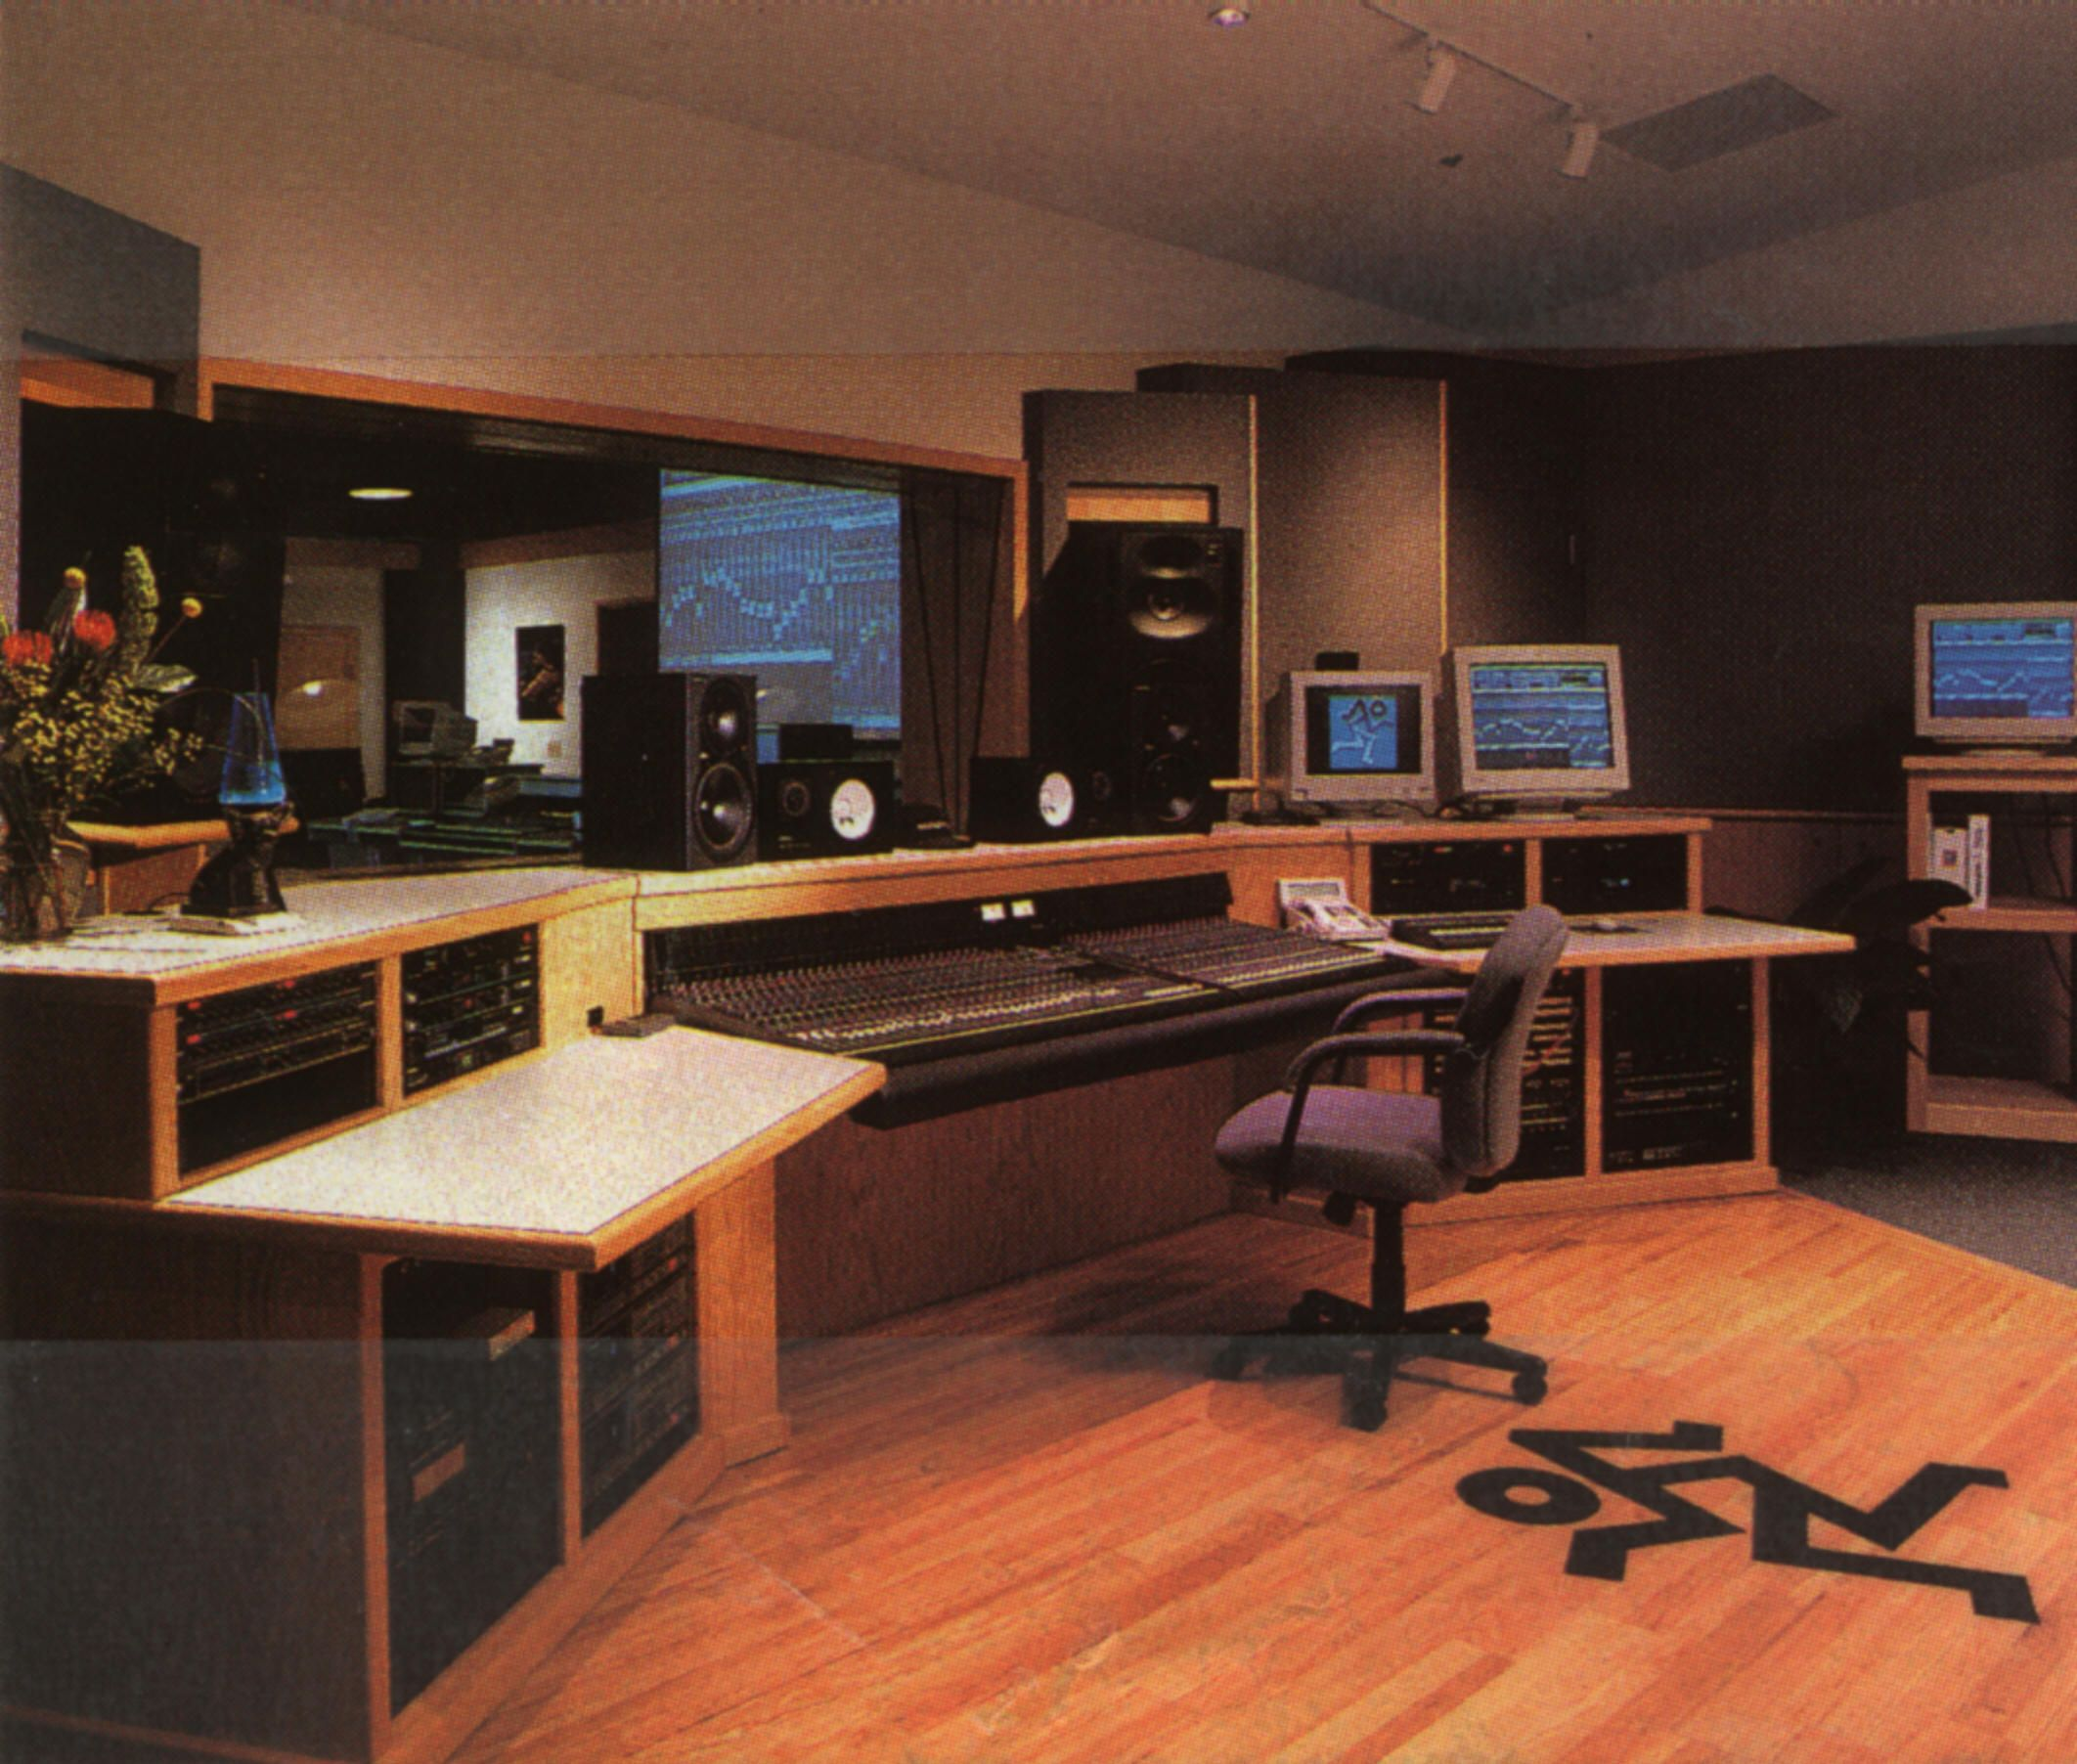 Best Kitchen Gallery: Homerecorder Index Php Ad Pinterest Cool Recording of Home Studio Design Ideas  on rachelxblog.com